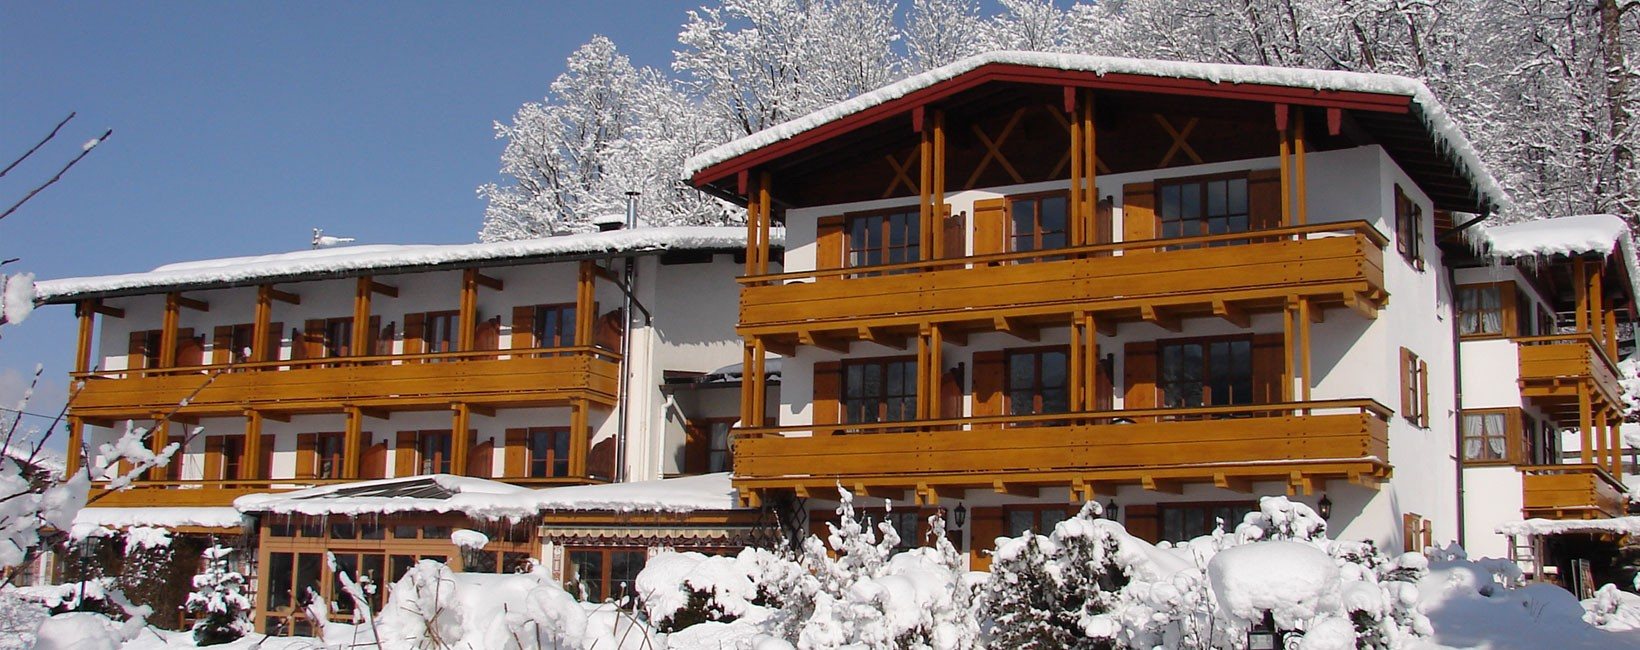 Hotel Georgenhof im Winter